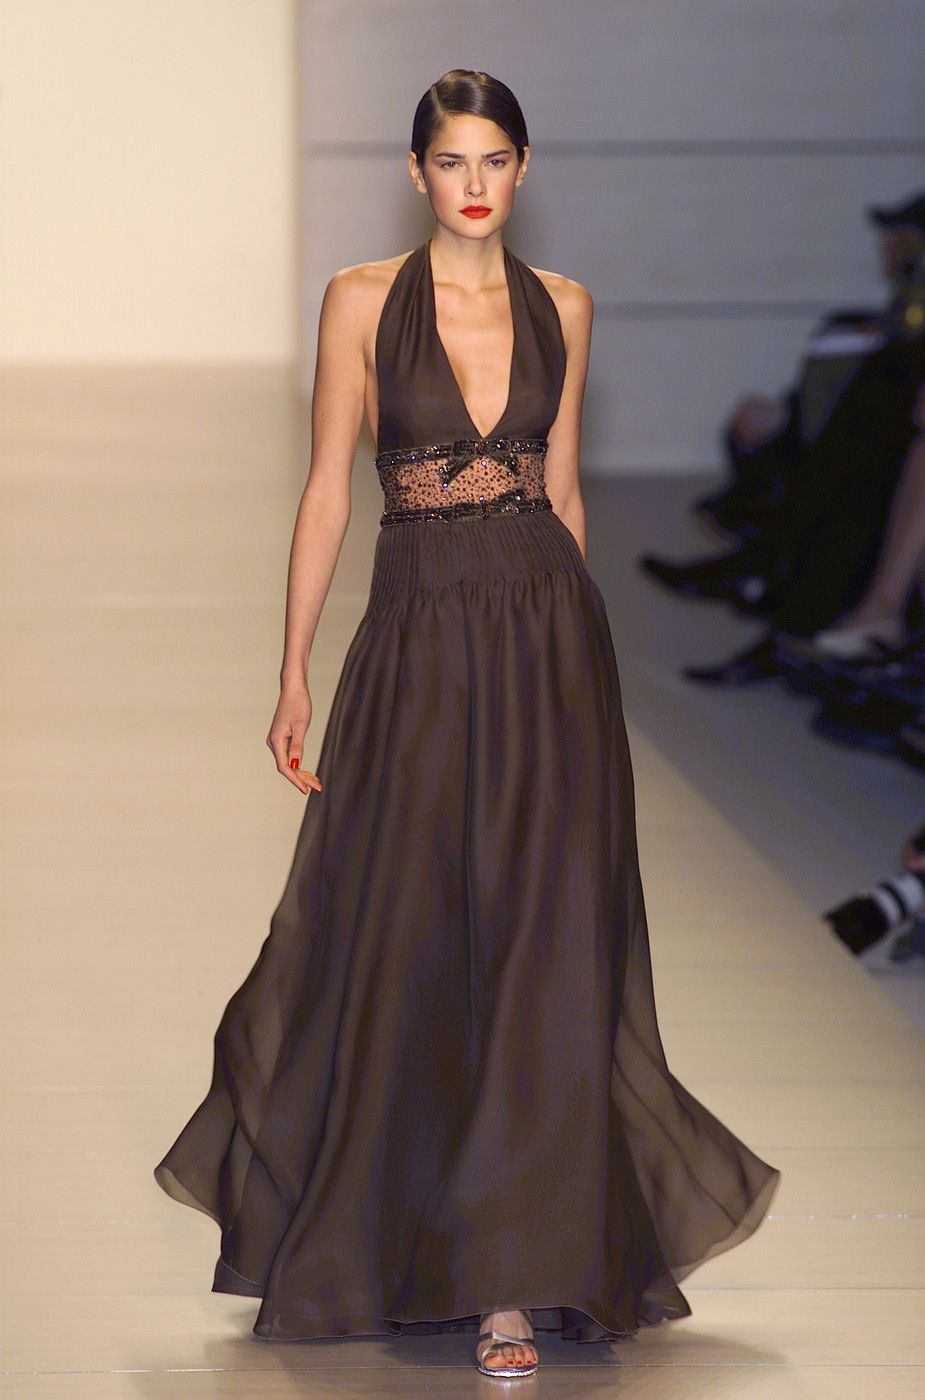 valentino alter top evening gown with sheer panel midriff luv it (Maggie)